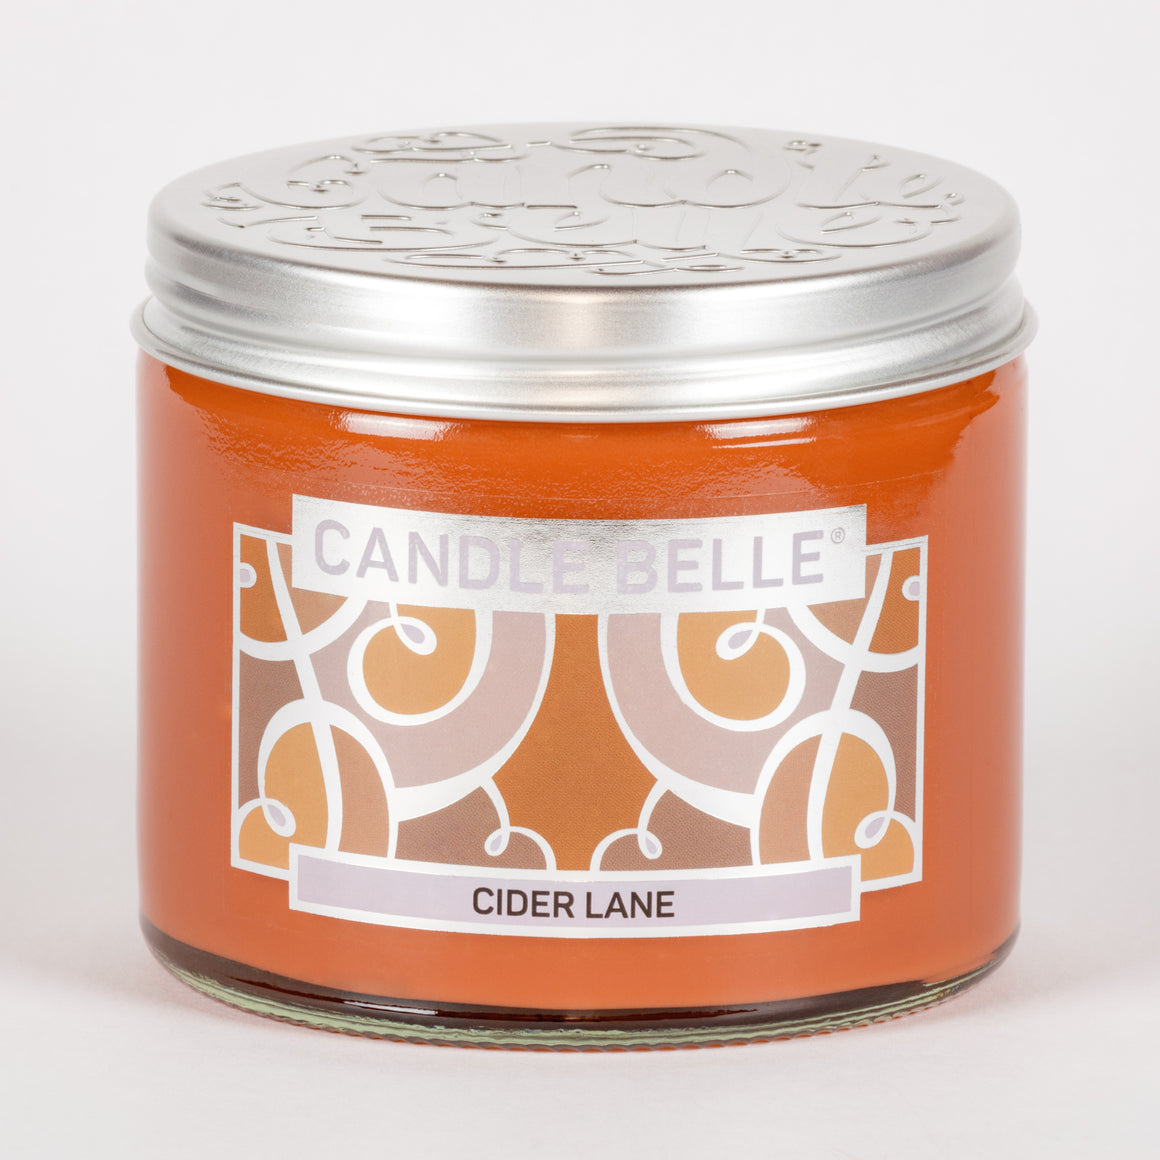 Candle Belle® Cider Lane Fragranced Twin Wick Jar Candle 240g (3 Pack)